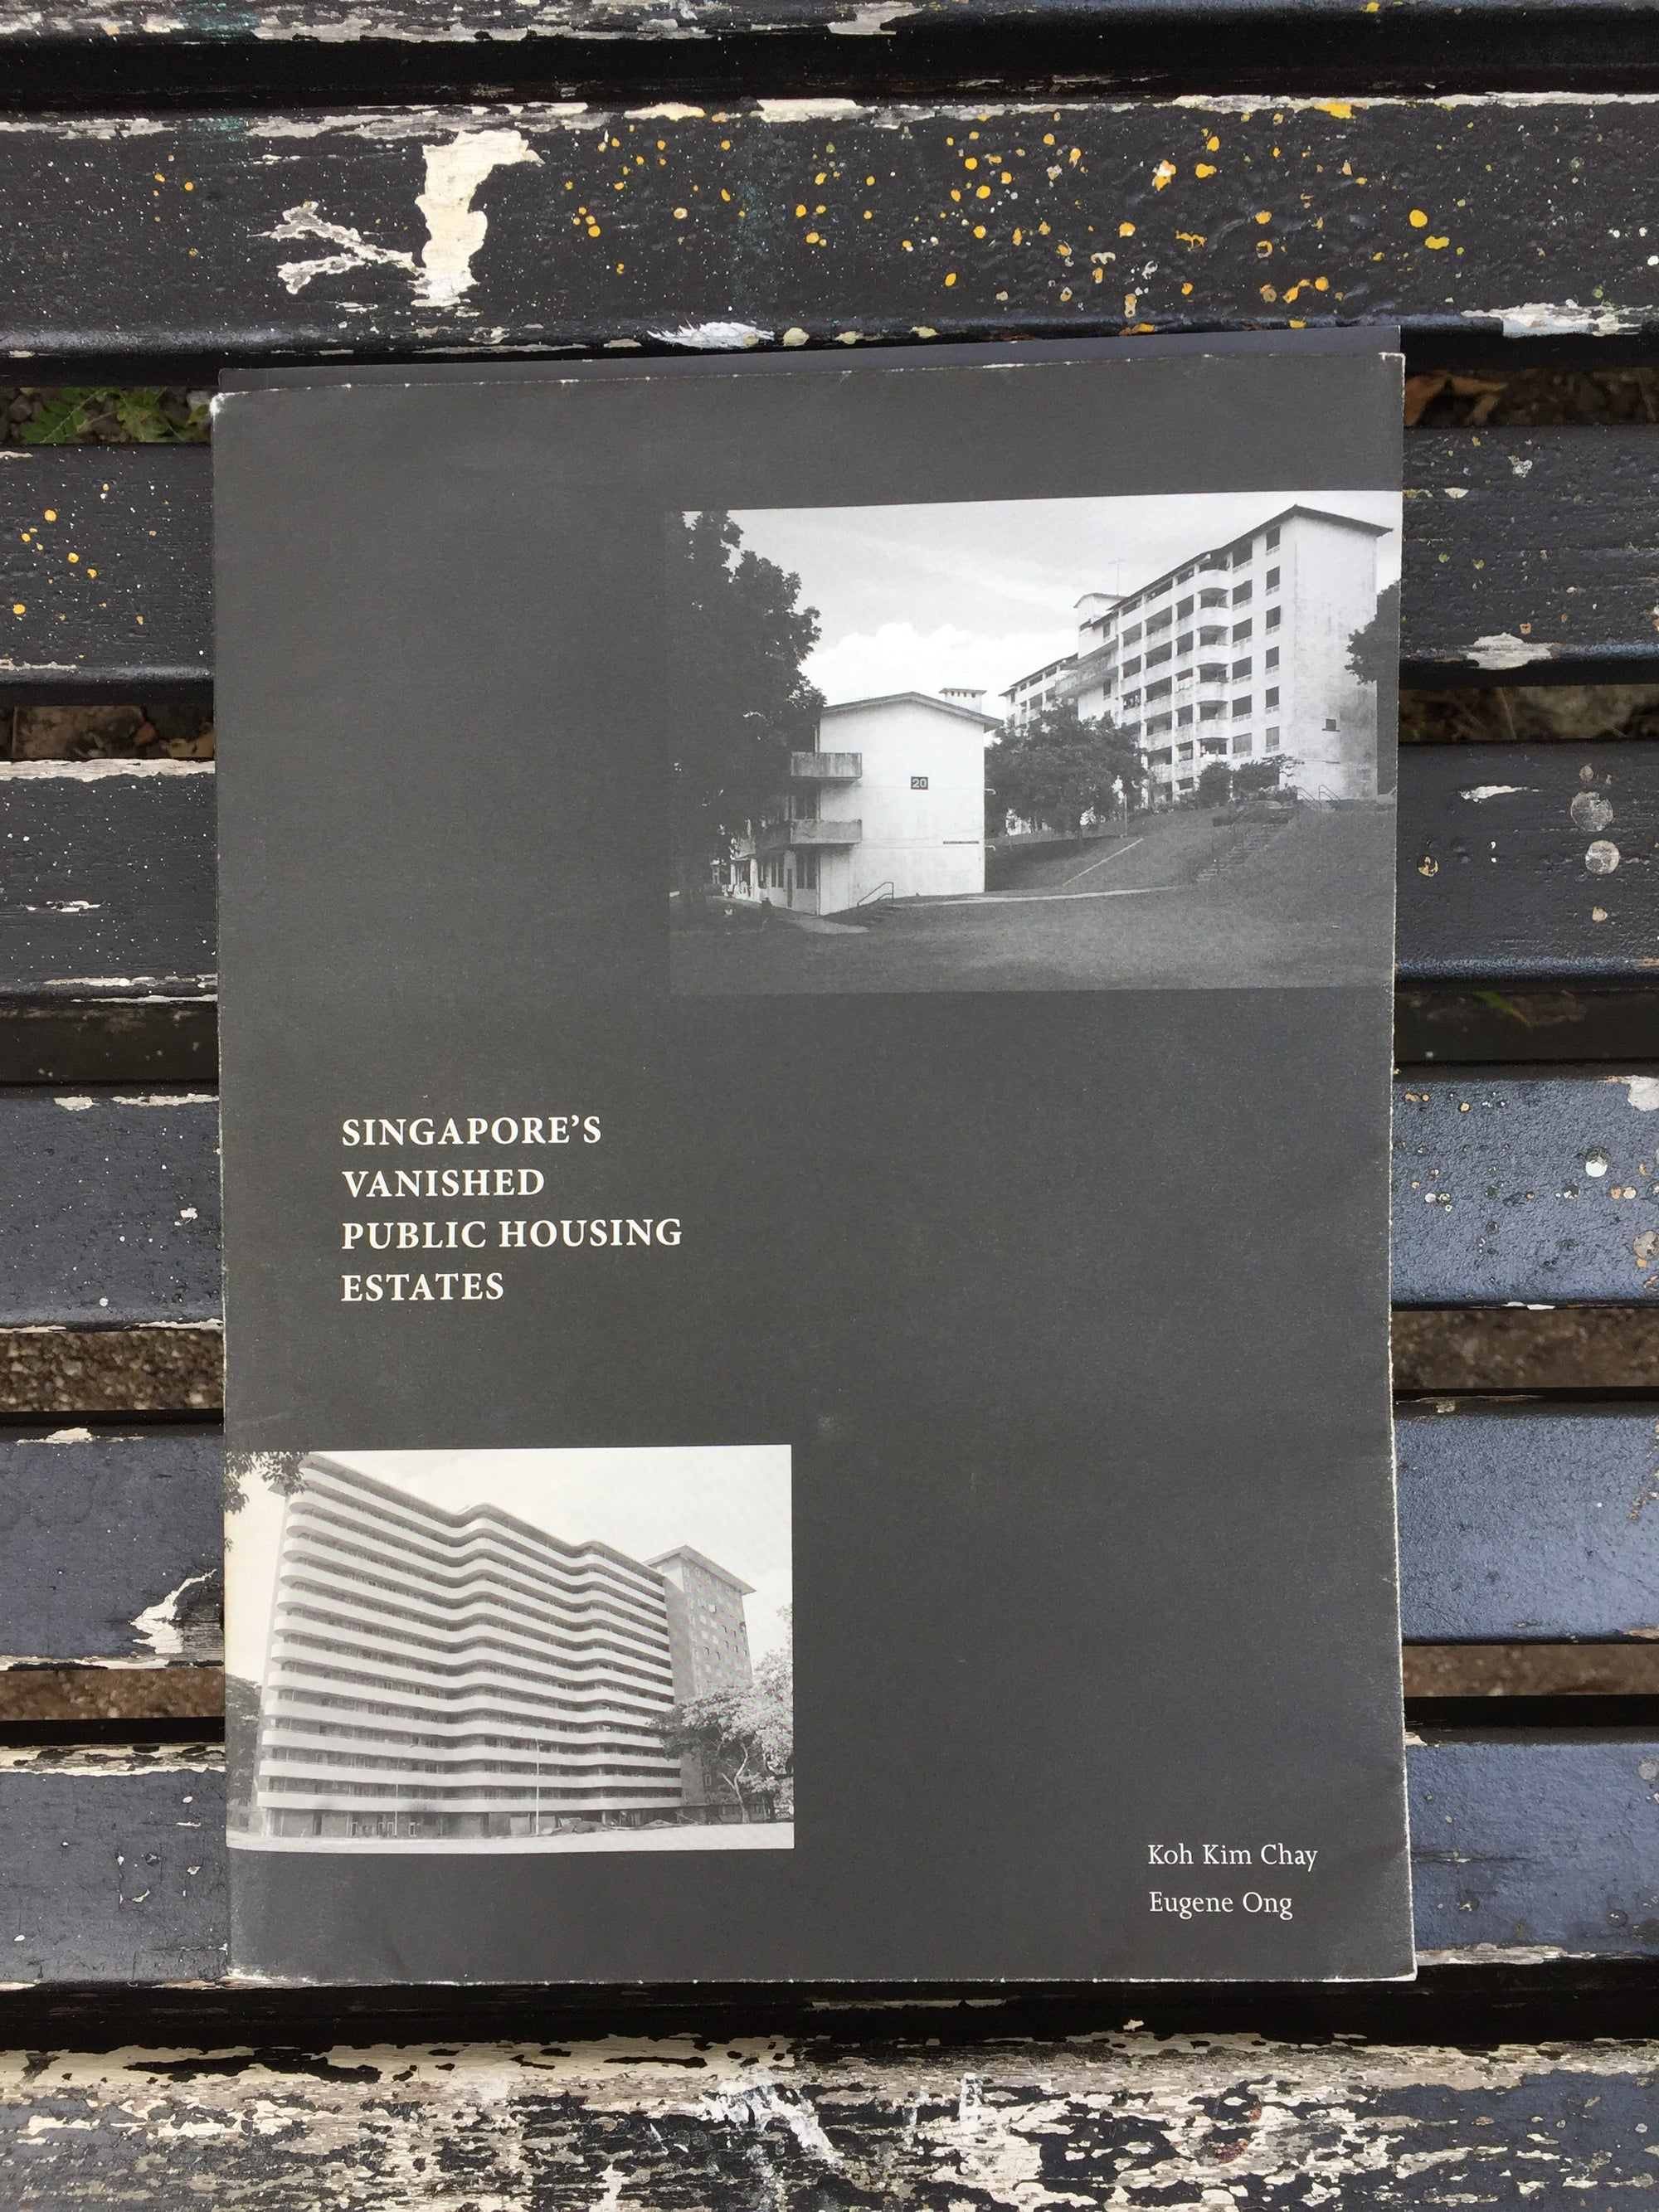 Singapore's Vanished Public Housing Estates (2017) by Koh Kim Chay , Ong Eugene